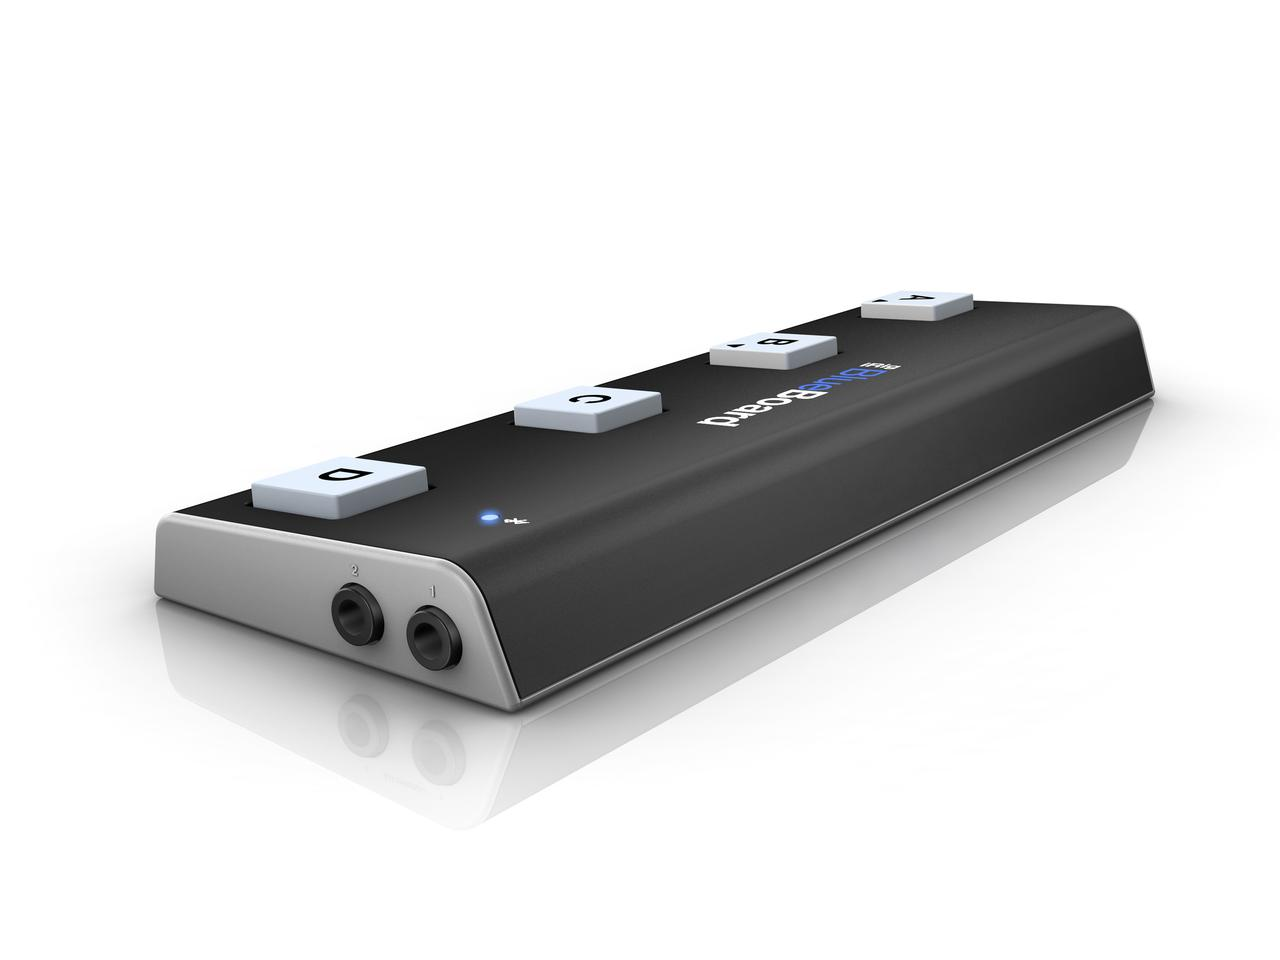 Expression, volume or wah pedals can be connected to the two 0.25-in jacks on the side of the device for control of onscreen dials and knobs